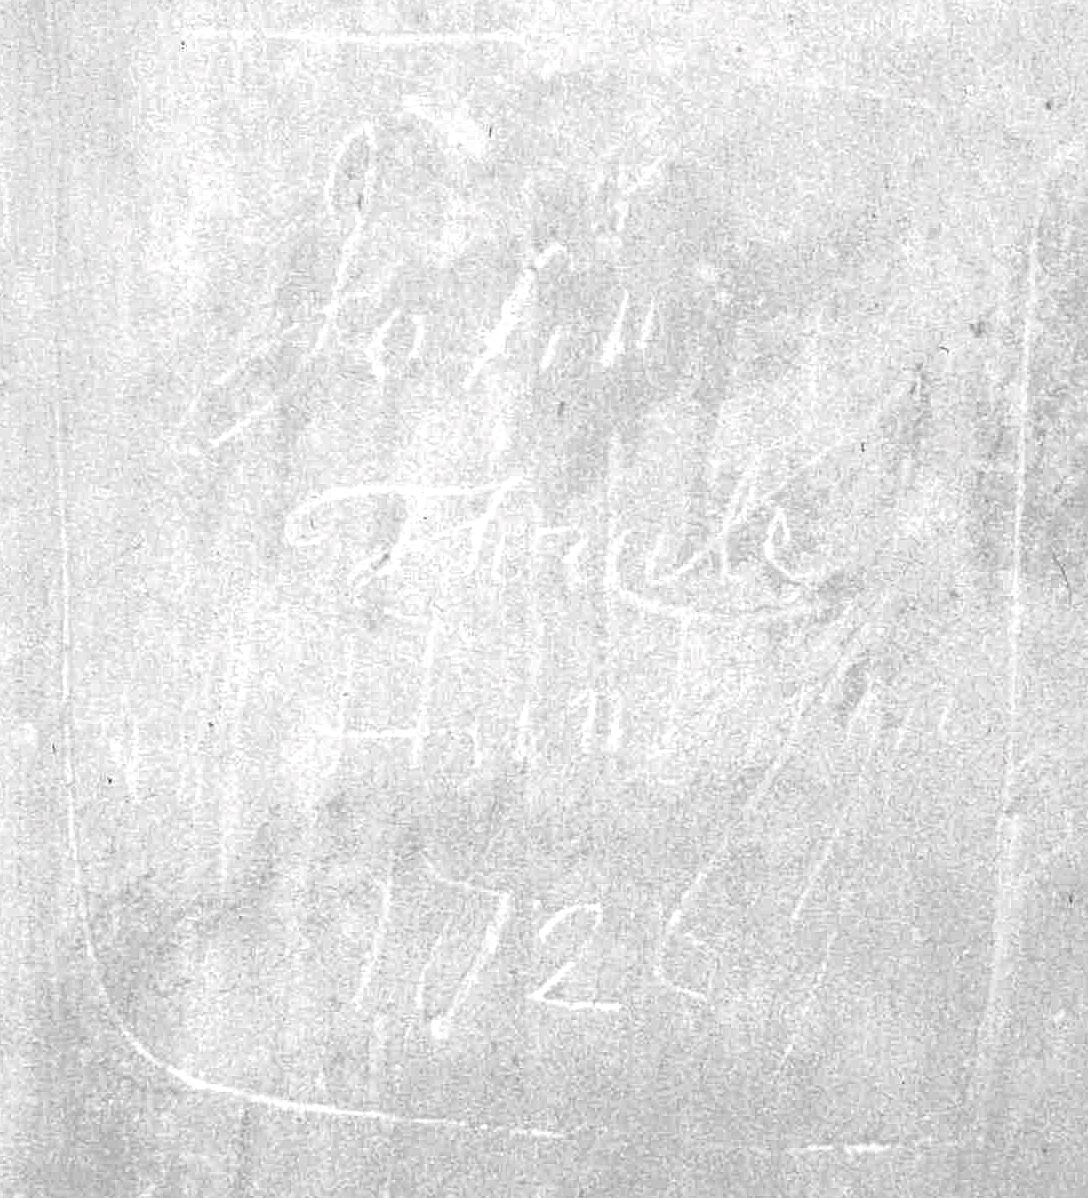 John Thrale 1726 graffiti, St Albans Cathedral